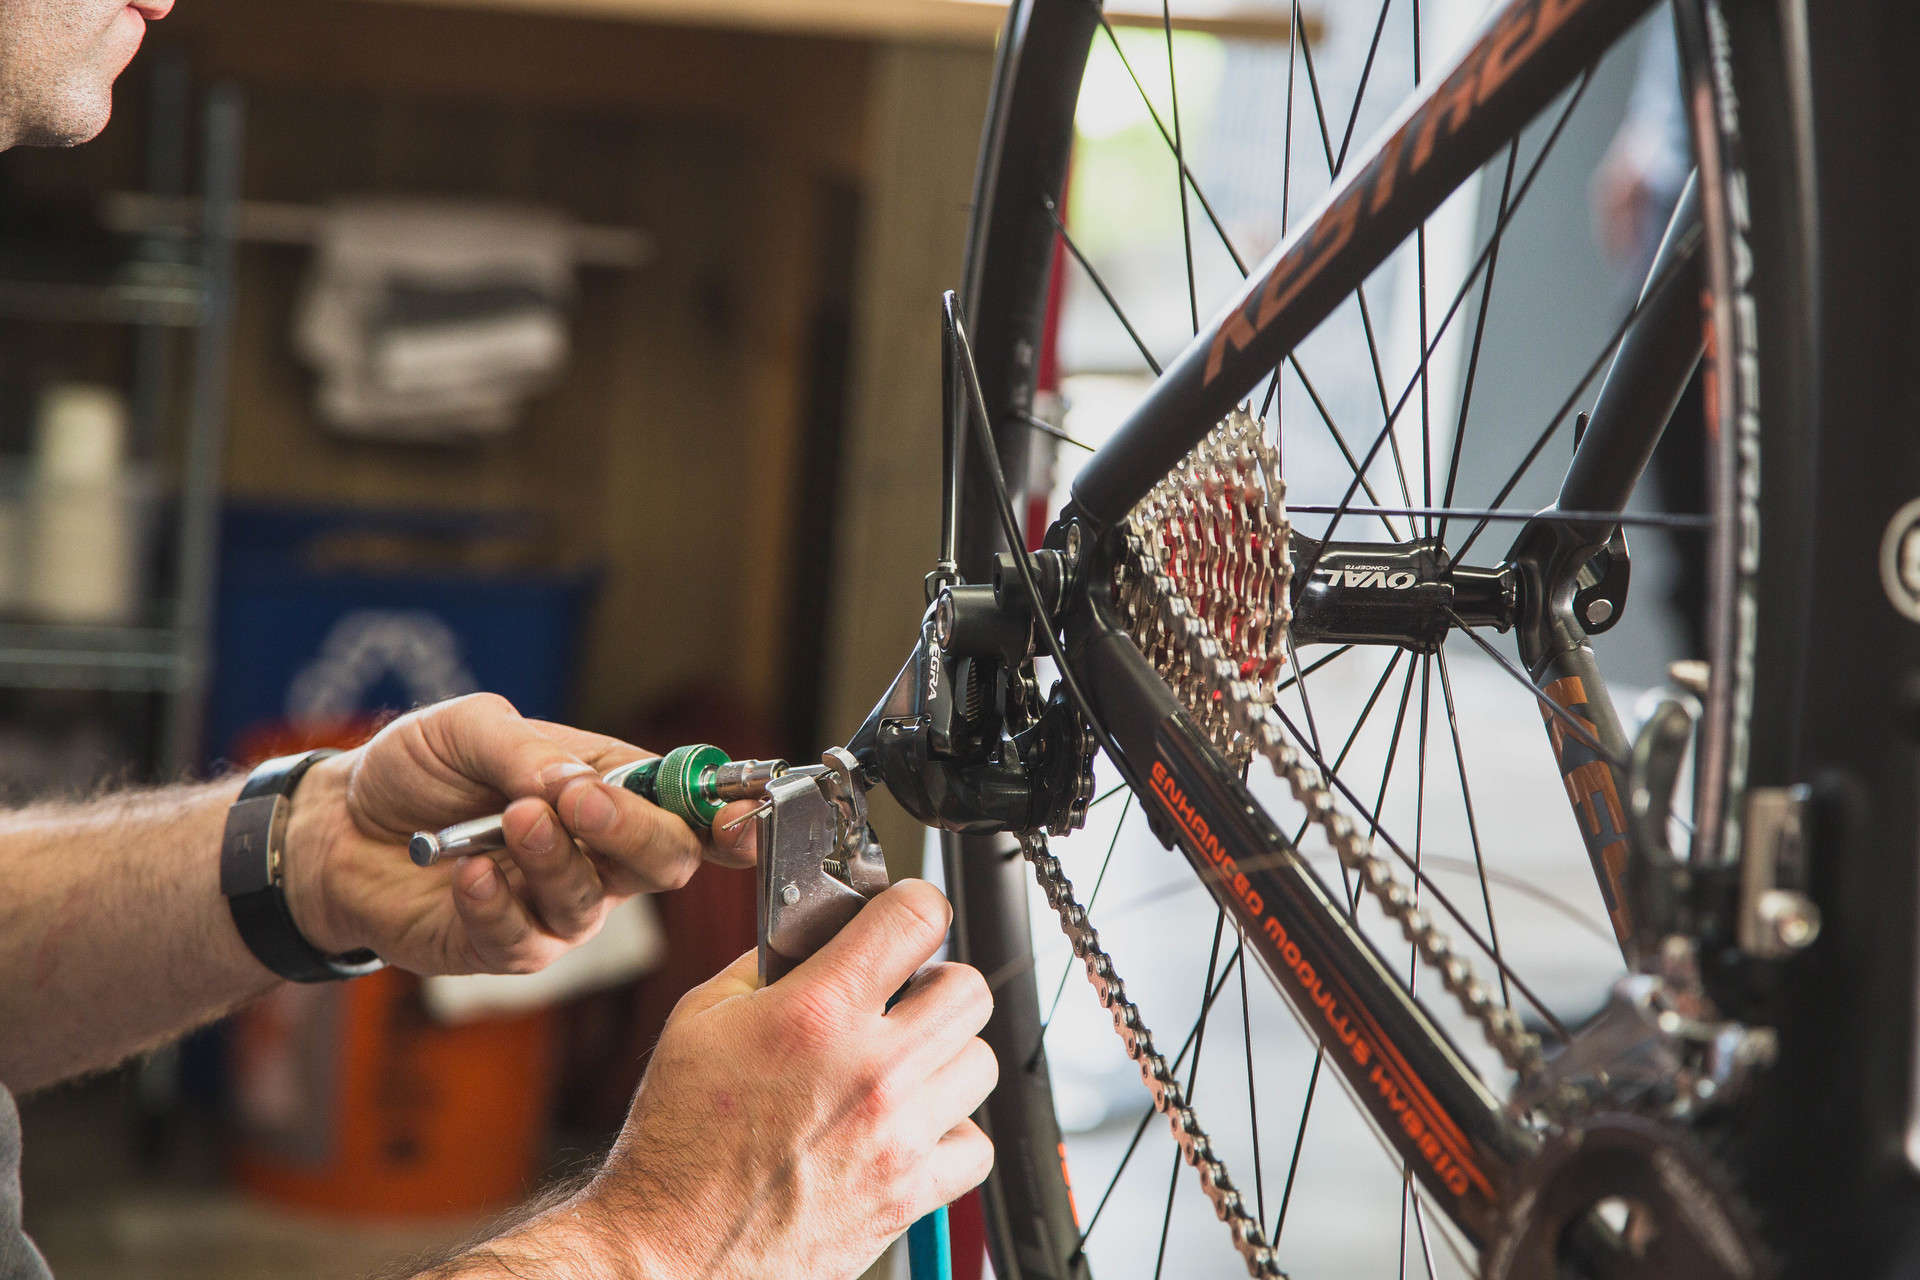 Bike Repair & Service - Seaside Cycle | Manchester-By-The